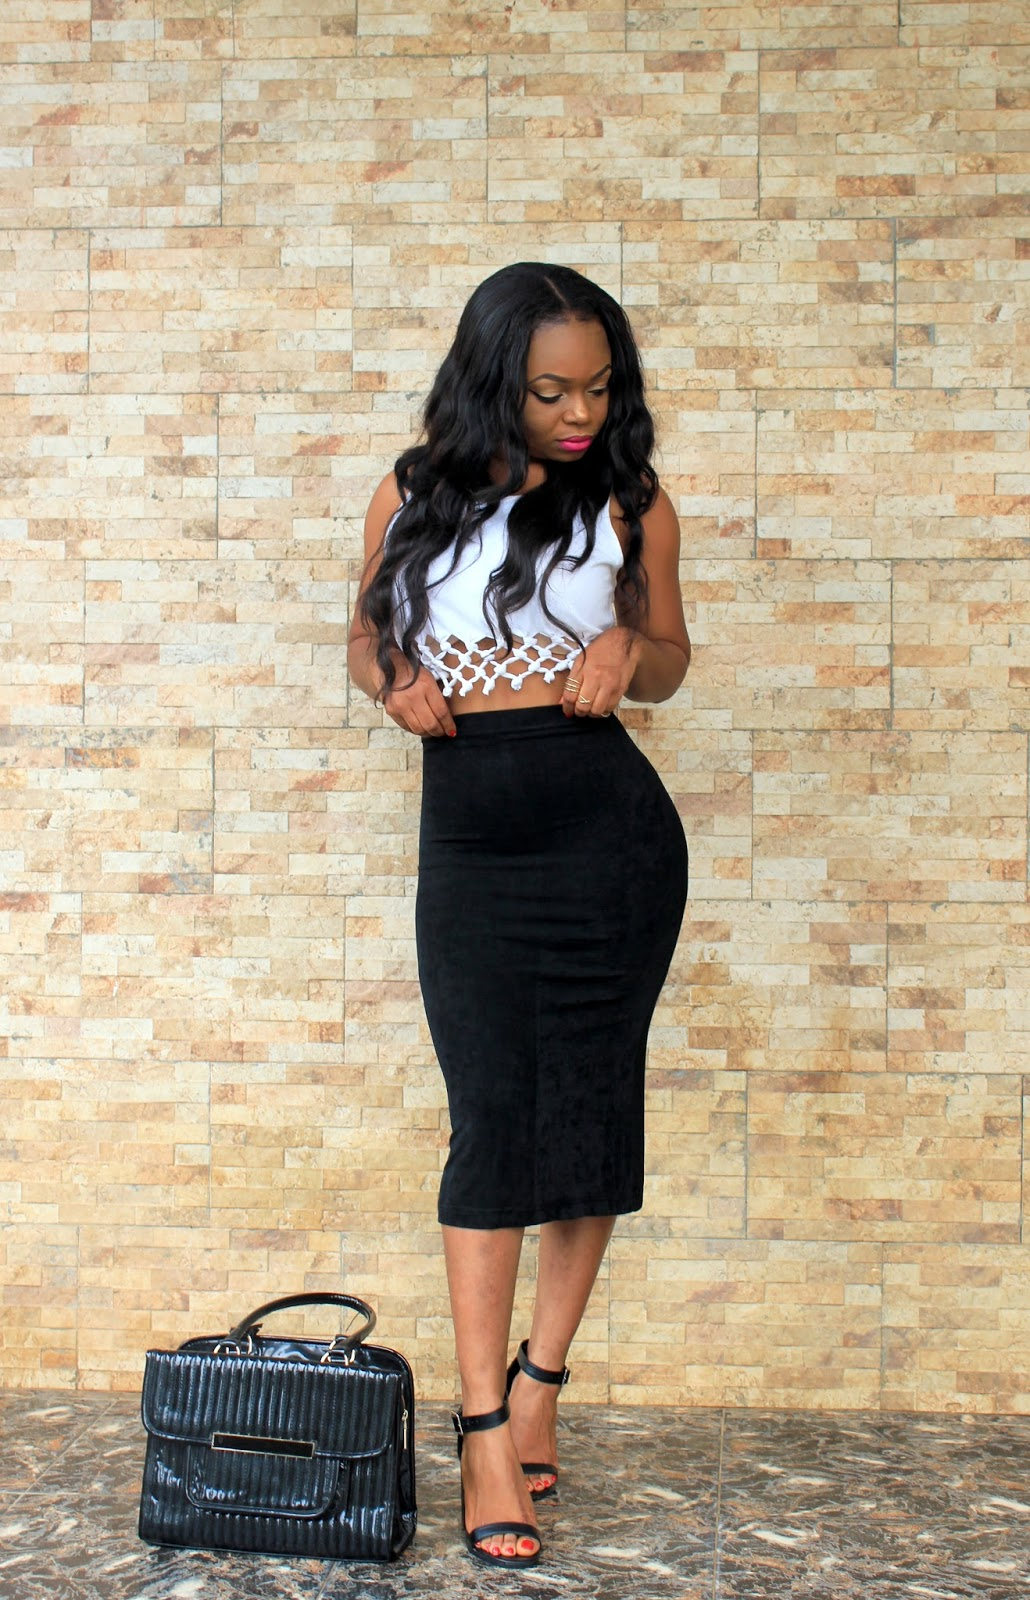 Styled - DIY CROP TOP with black pencil skirt